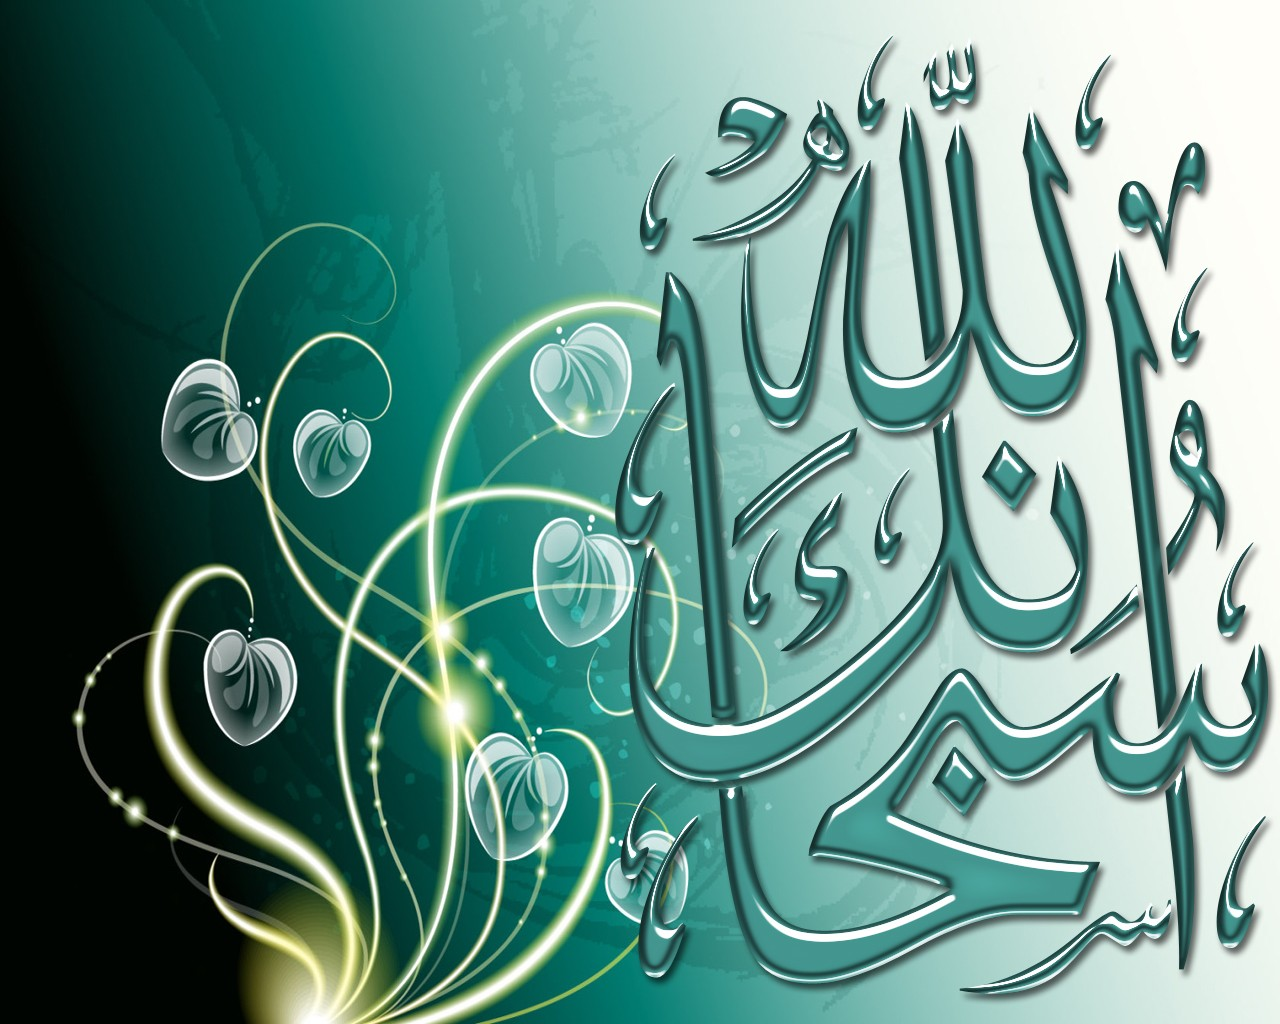 301 moved permanently Allah calligraphy wallpaper